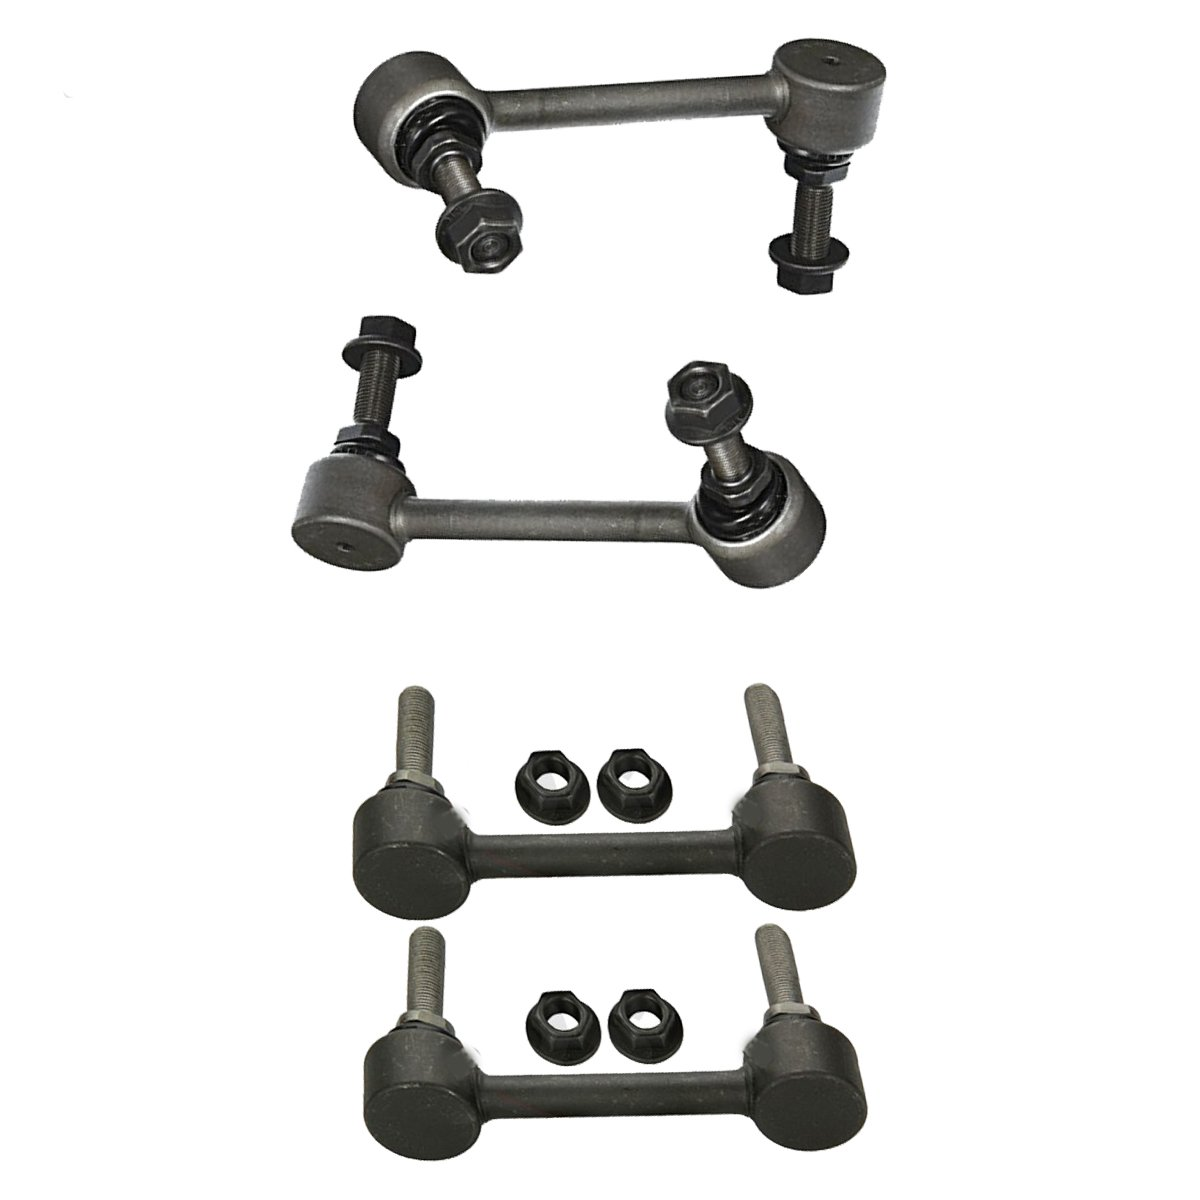 Front Sway Bar End Link Set & Rear Sway Bar Links 4pc Kit for 11-15 Dodge Durango - [2011 Jeep Grand Cherokee] - [2012-2015 Grand Cherokee 3.6/5.7L] Detroit Axle